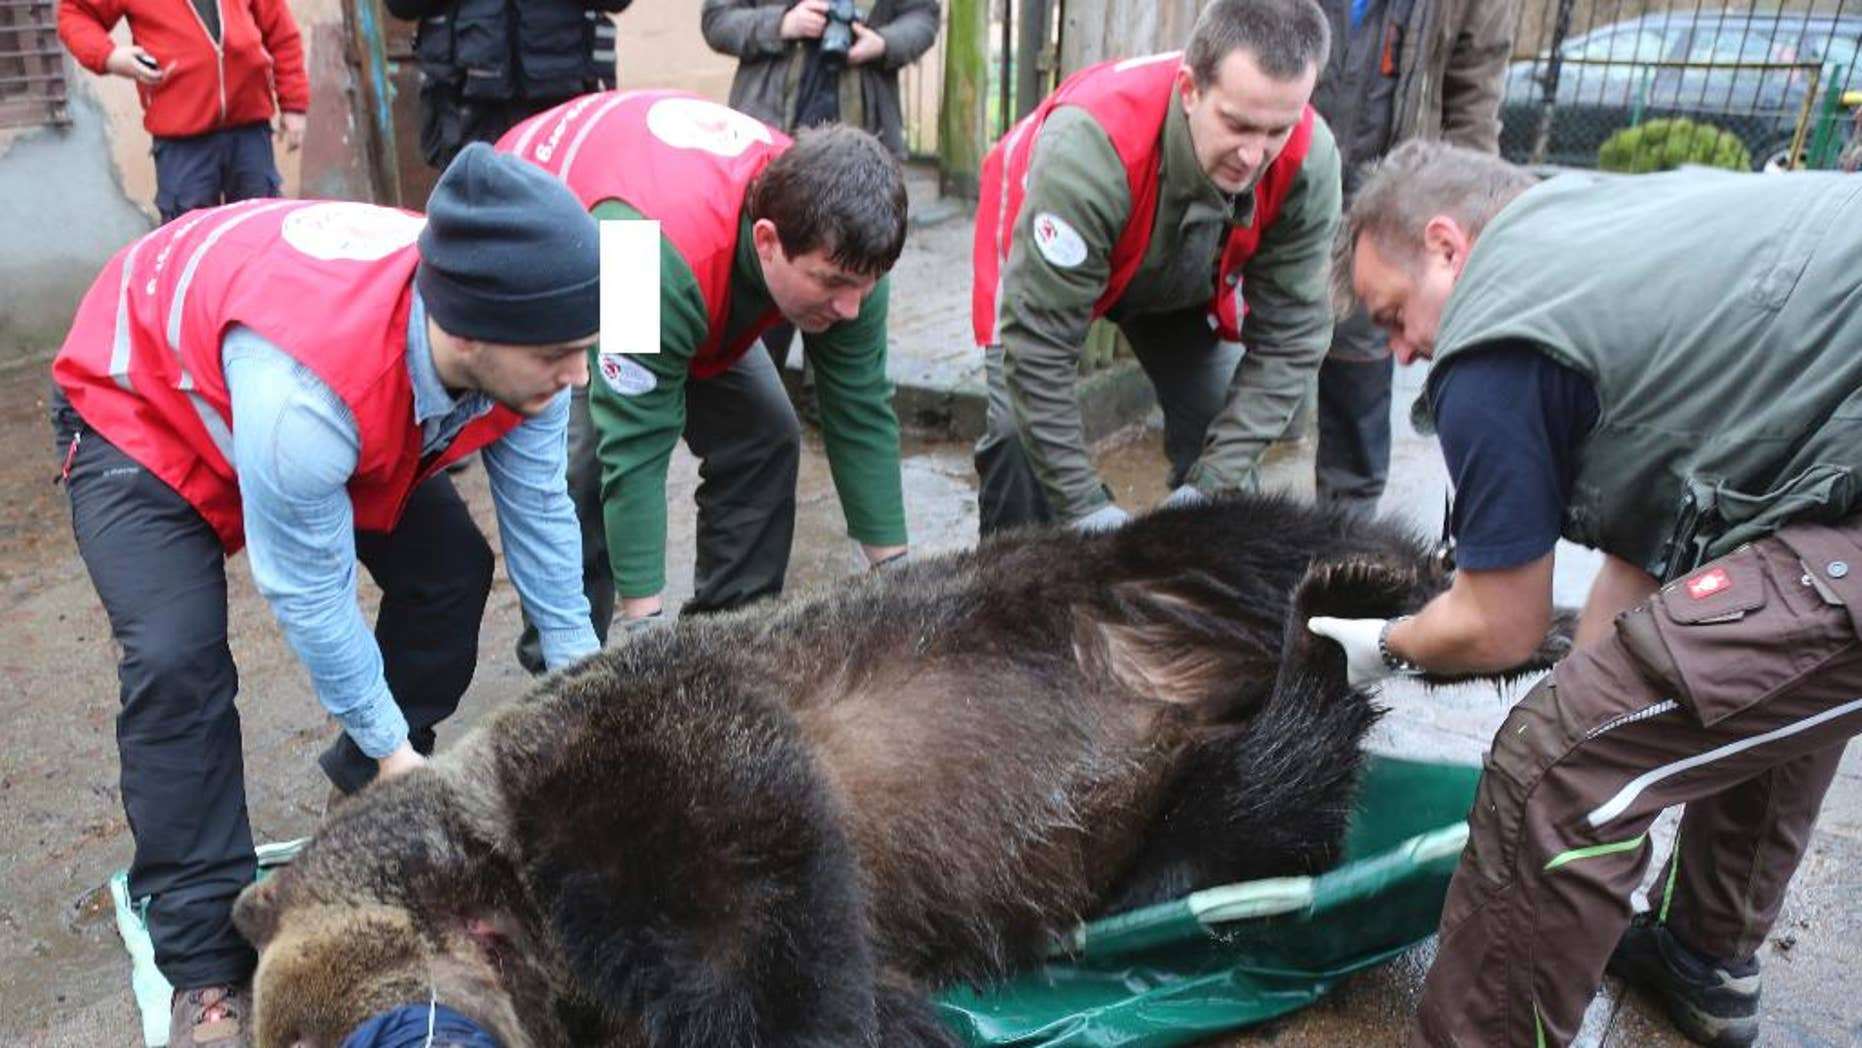 Doctors and activists of the FOUR PAWS animal welfare international organization are preparing to load sleeping brown bear Wojtusia into a cage and onto a truck in Braniewo, Poland, Wednesday, 14 Dec. 2016, to transport it from inappropriate conditions at the unlicensed local zoo in northeastern Poland to a spacious enclose and good conditions at a professional zoo in Poznan, in western Poland. The organization says the transfer marks the end of illegal keeping of brown bears in Poland. (Christiane Flechtner/ FOUR PAWS via AP)